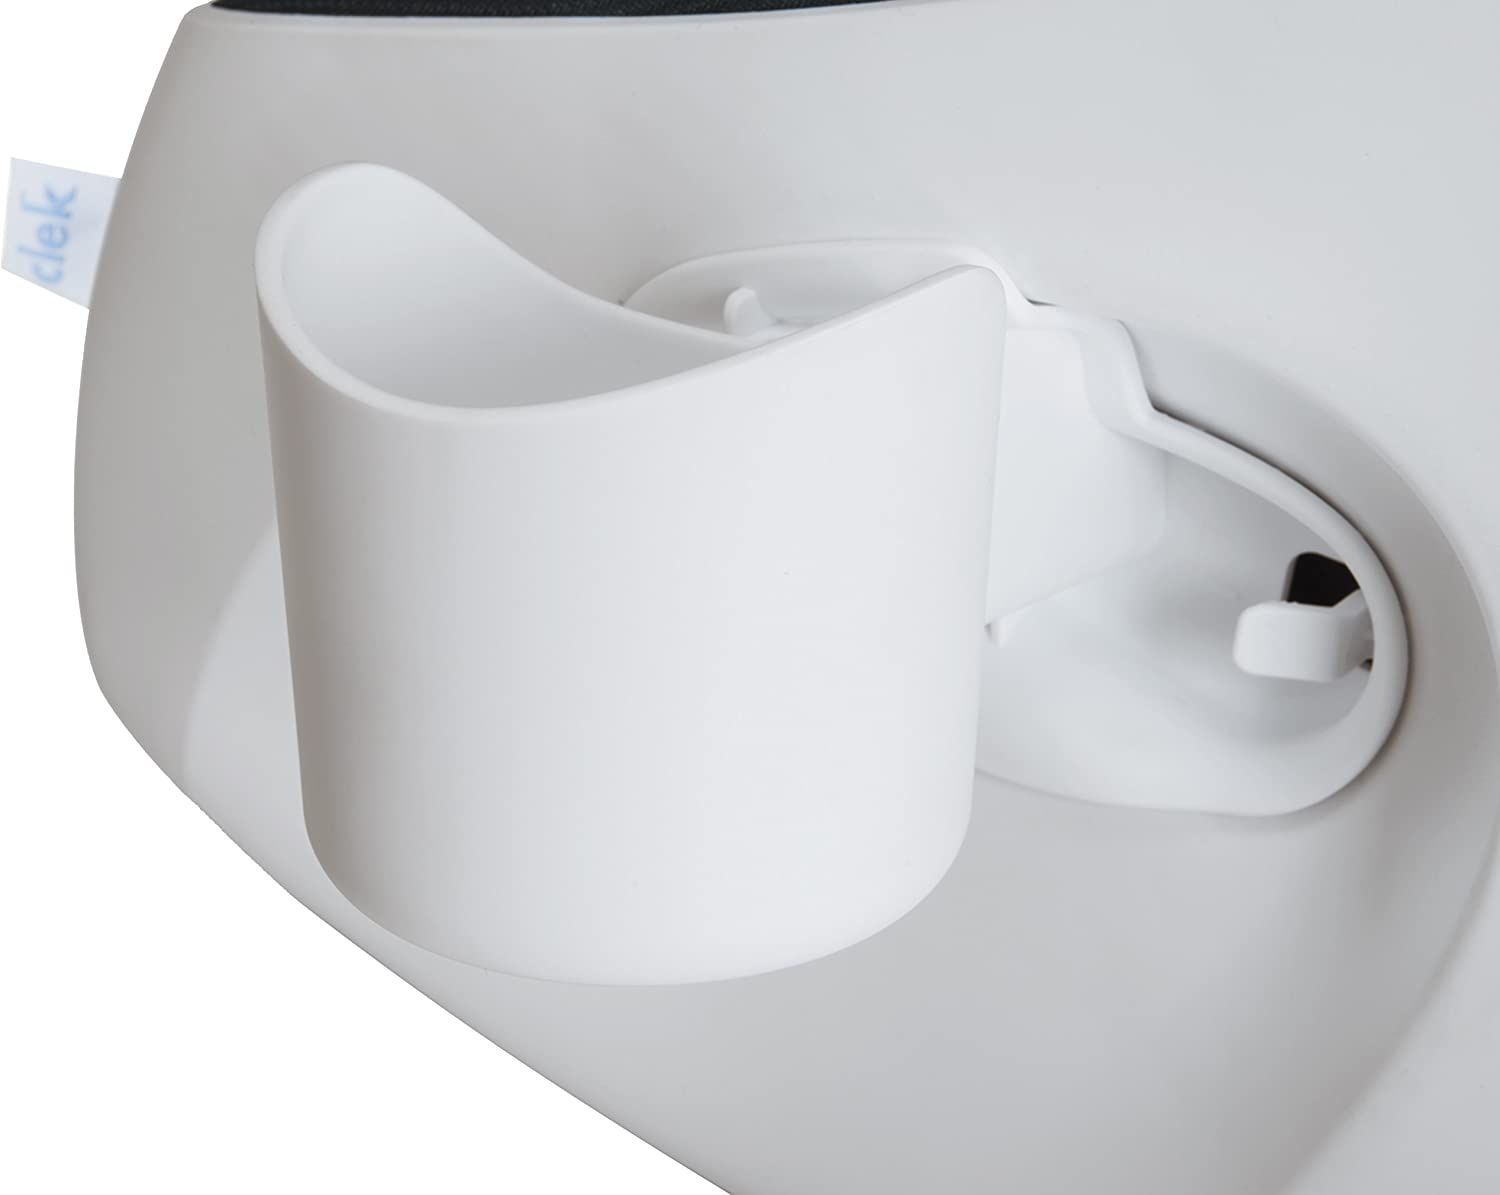 White Clek Foonf//Fllo Drink Thingy Cup Holder